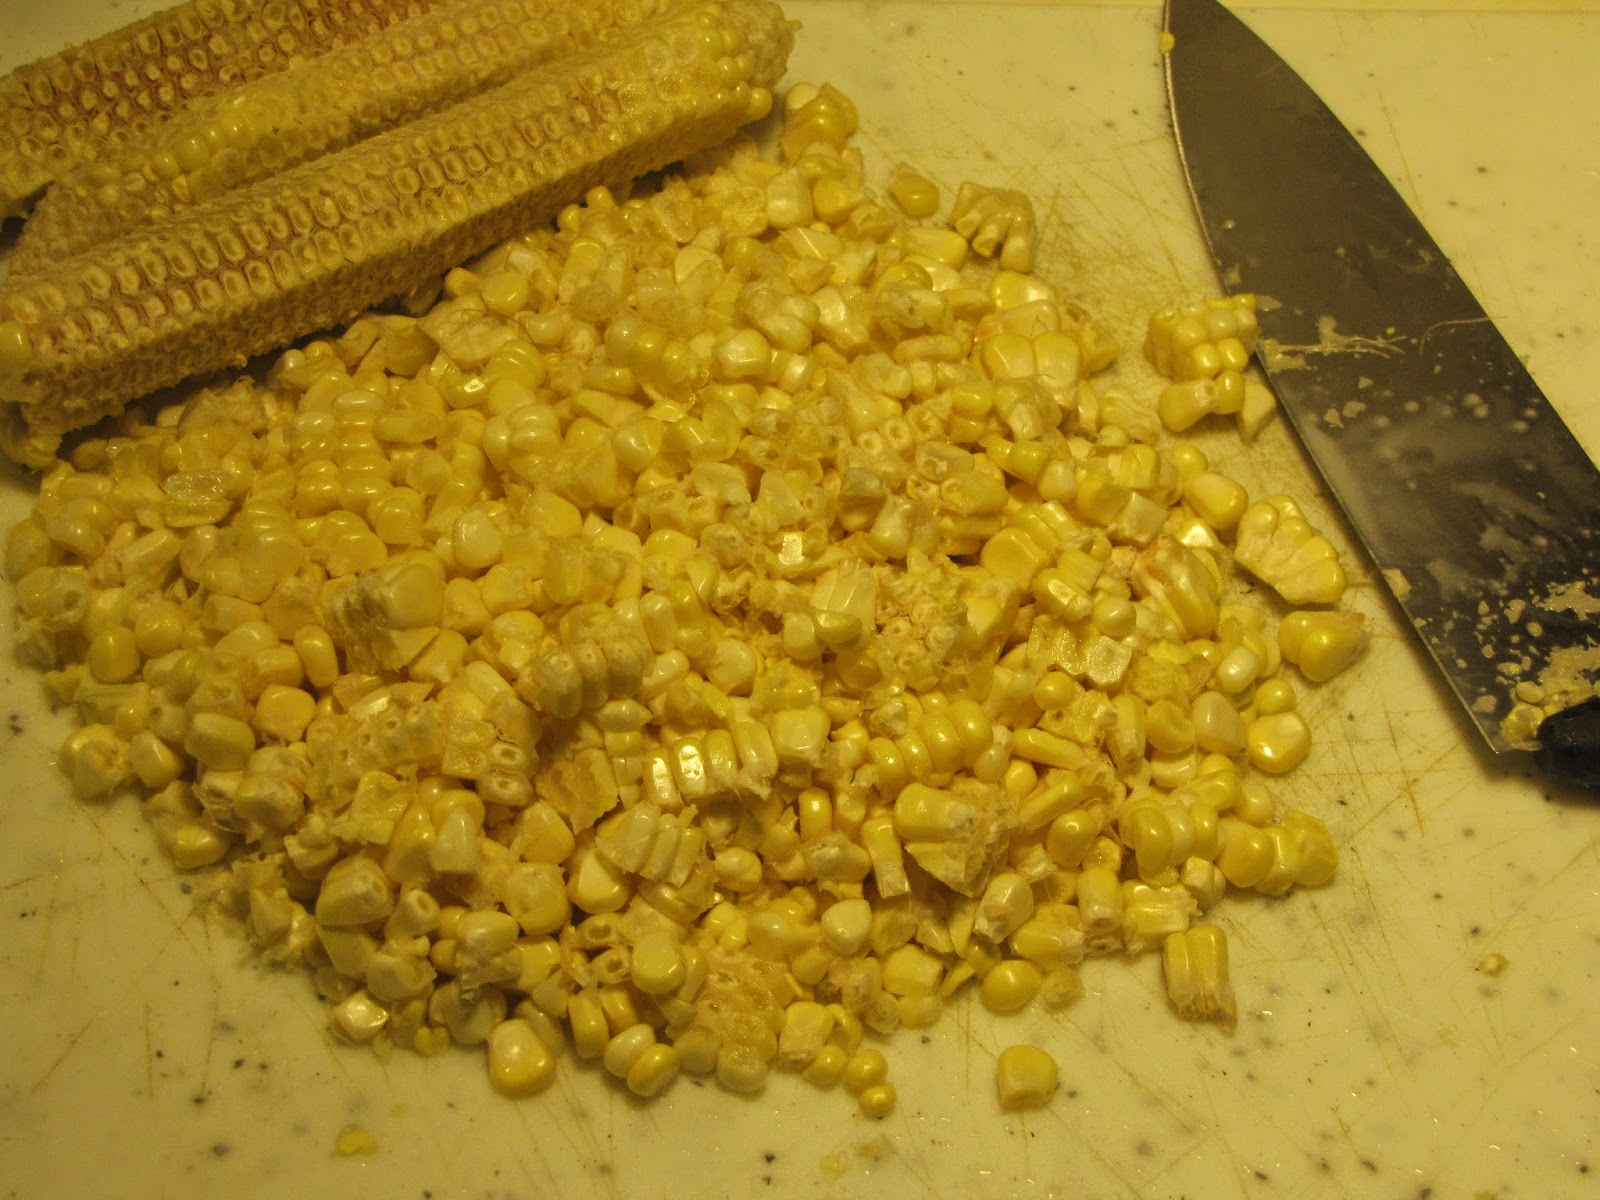 Corn kernel cut off the cob with a sharp knife